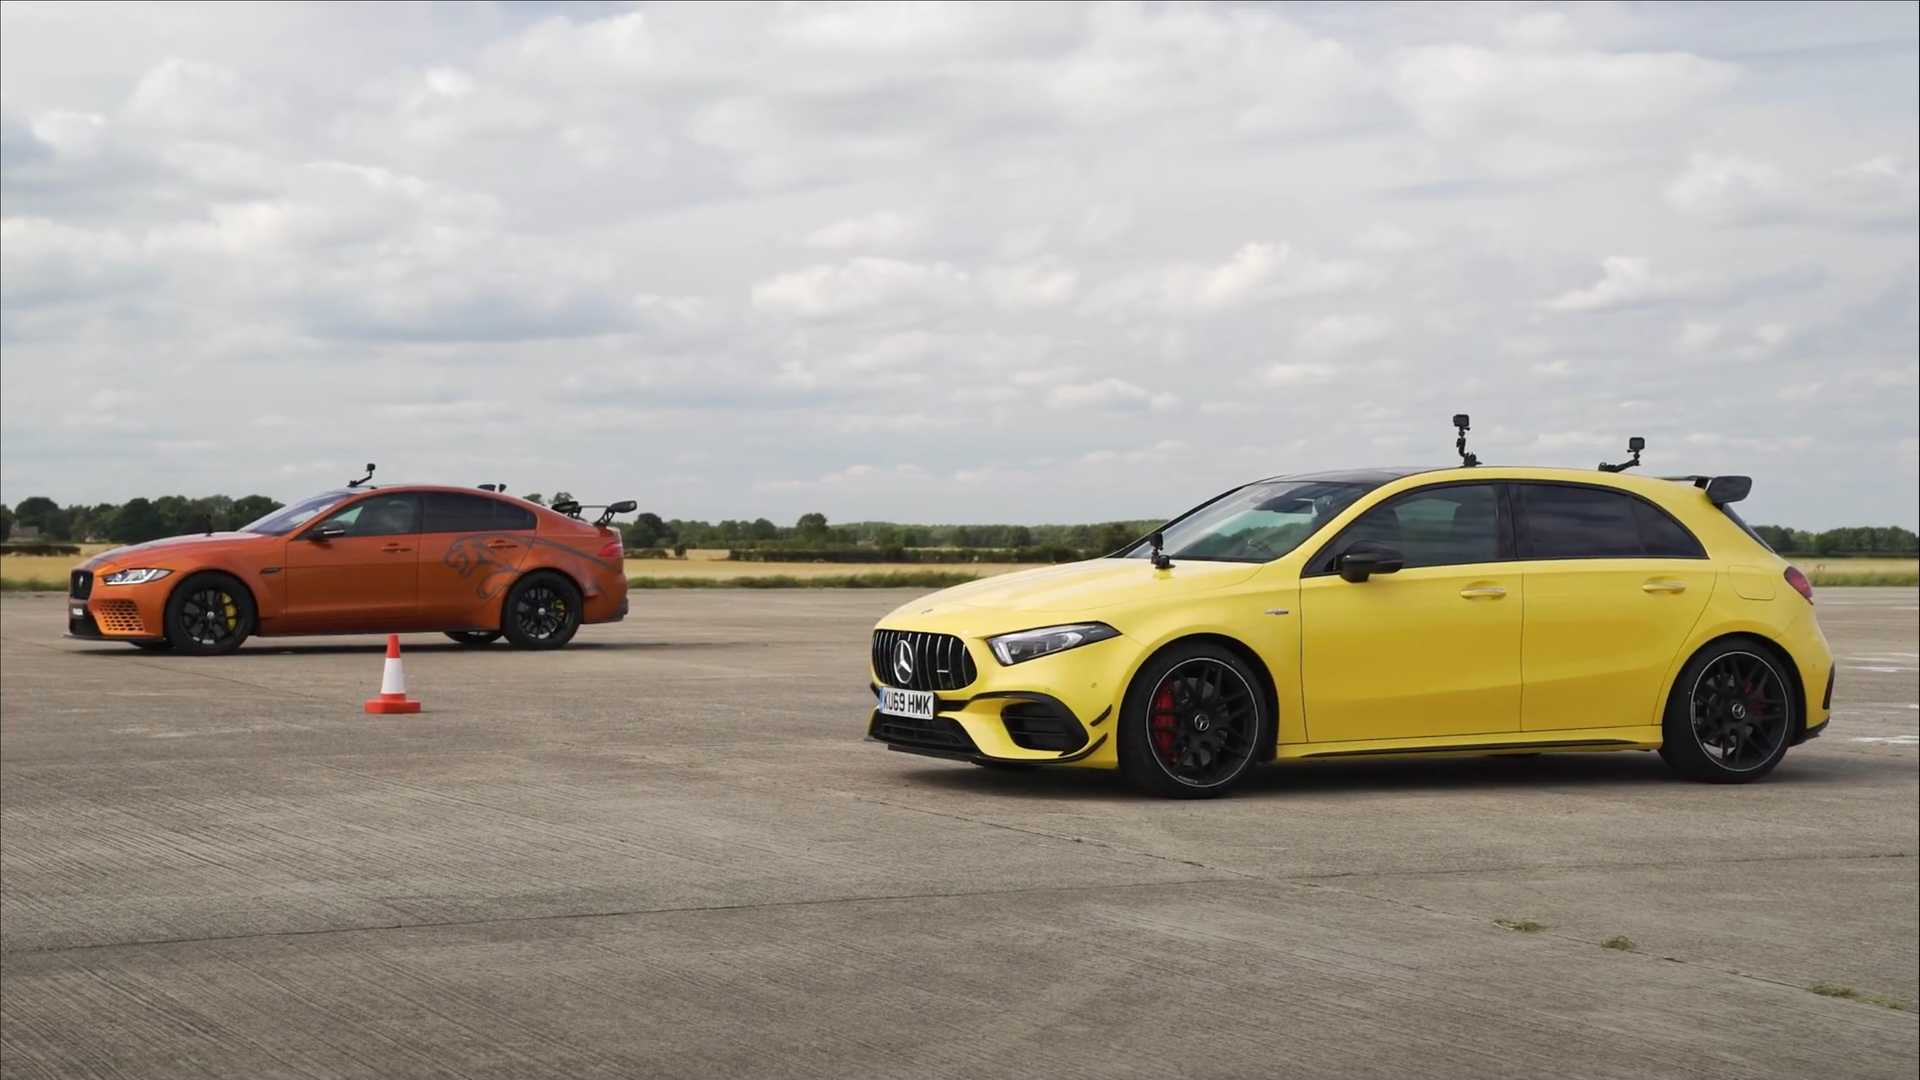 Mercedes-AMG A45 Drag Races An Unlikely Opponent, The Jaguar Project 8 - Motor1